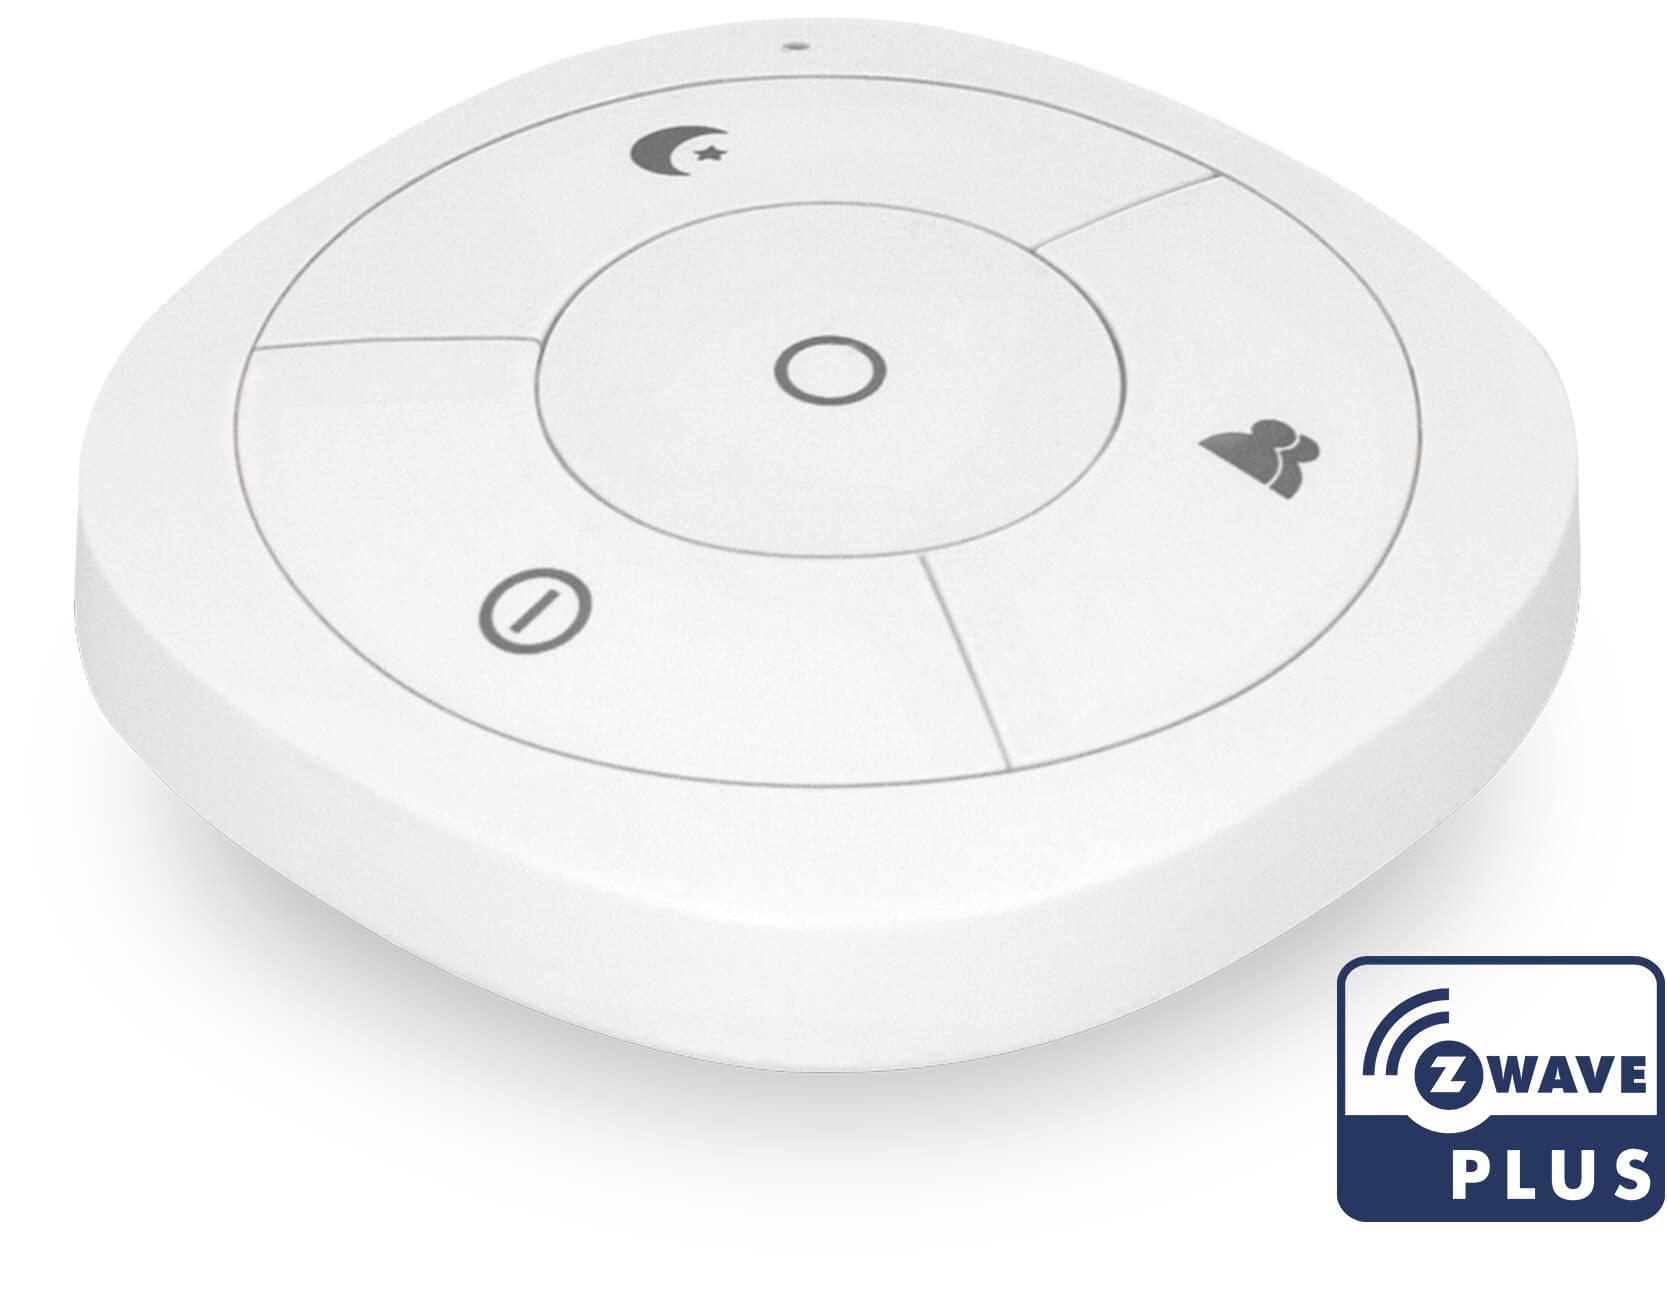 Smart-Home-Fernbedienung mit Z-Wave Plus.